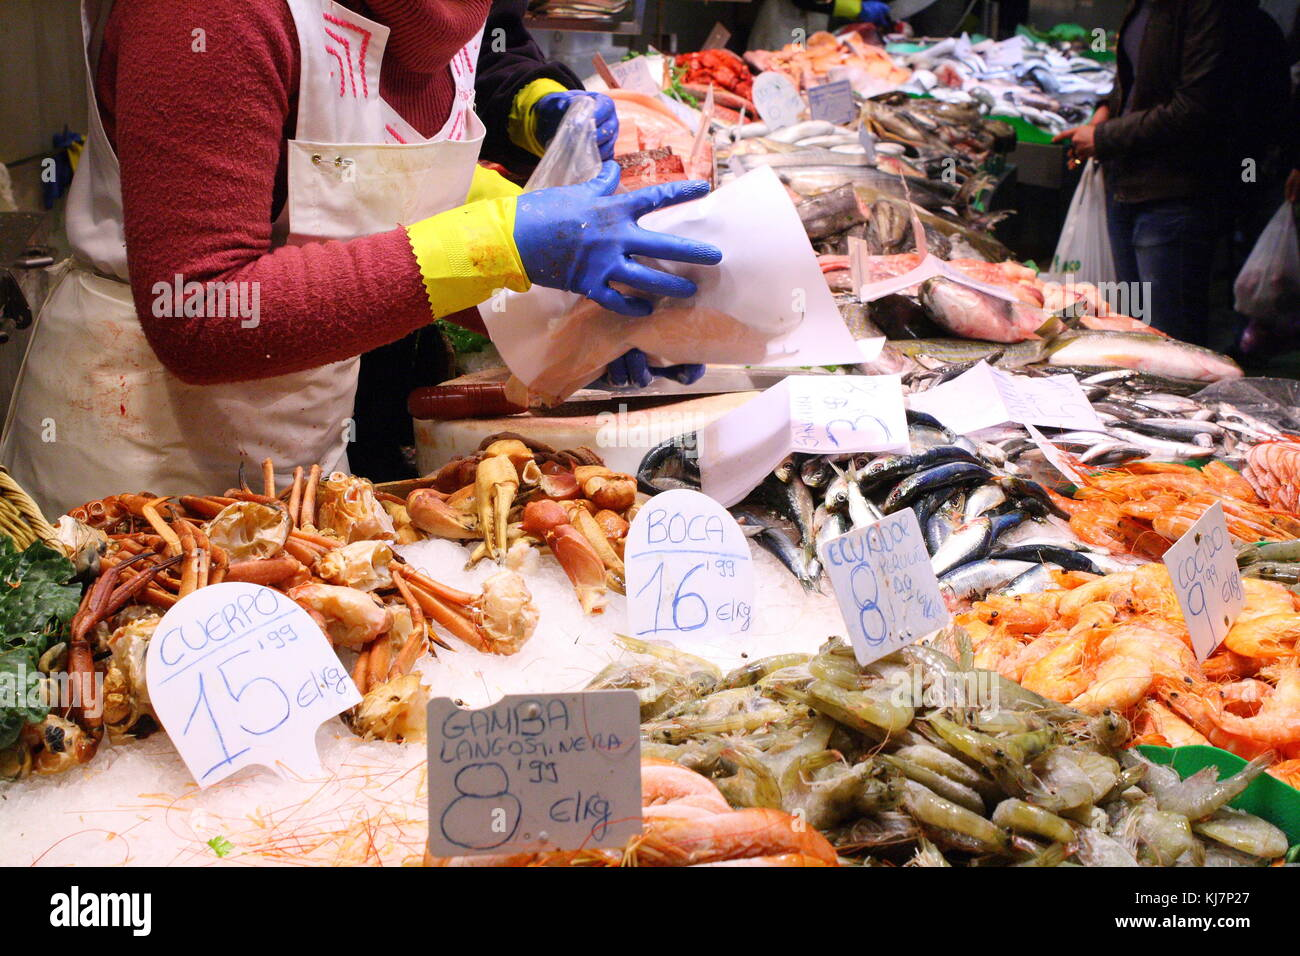 Crabs and shrimp to buy on display at the seaside fish market. - Stock Image